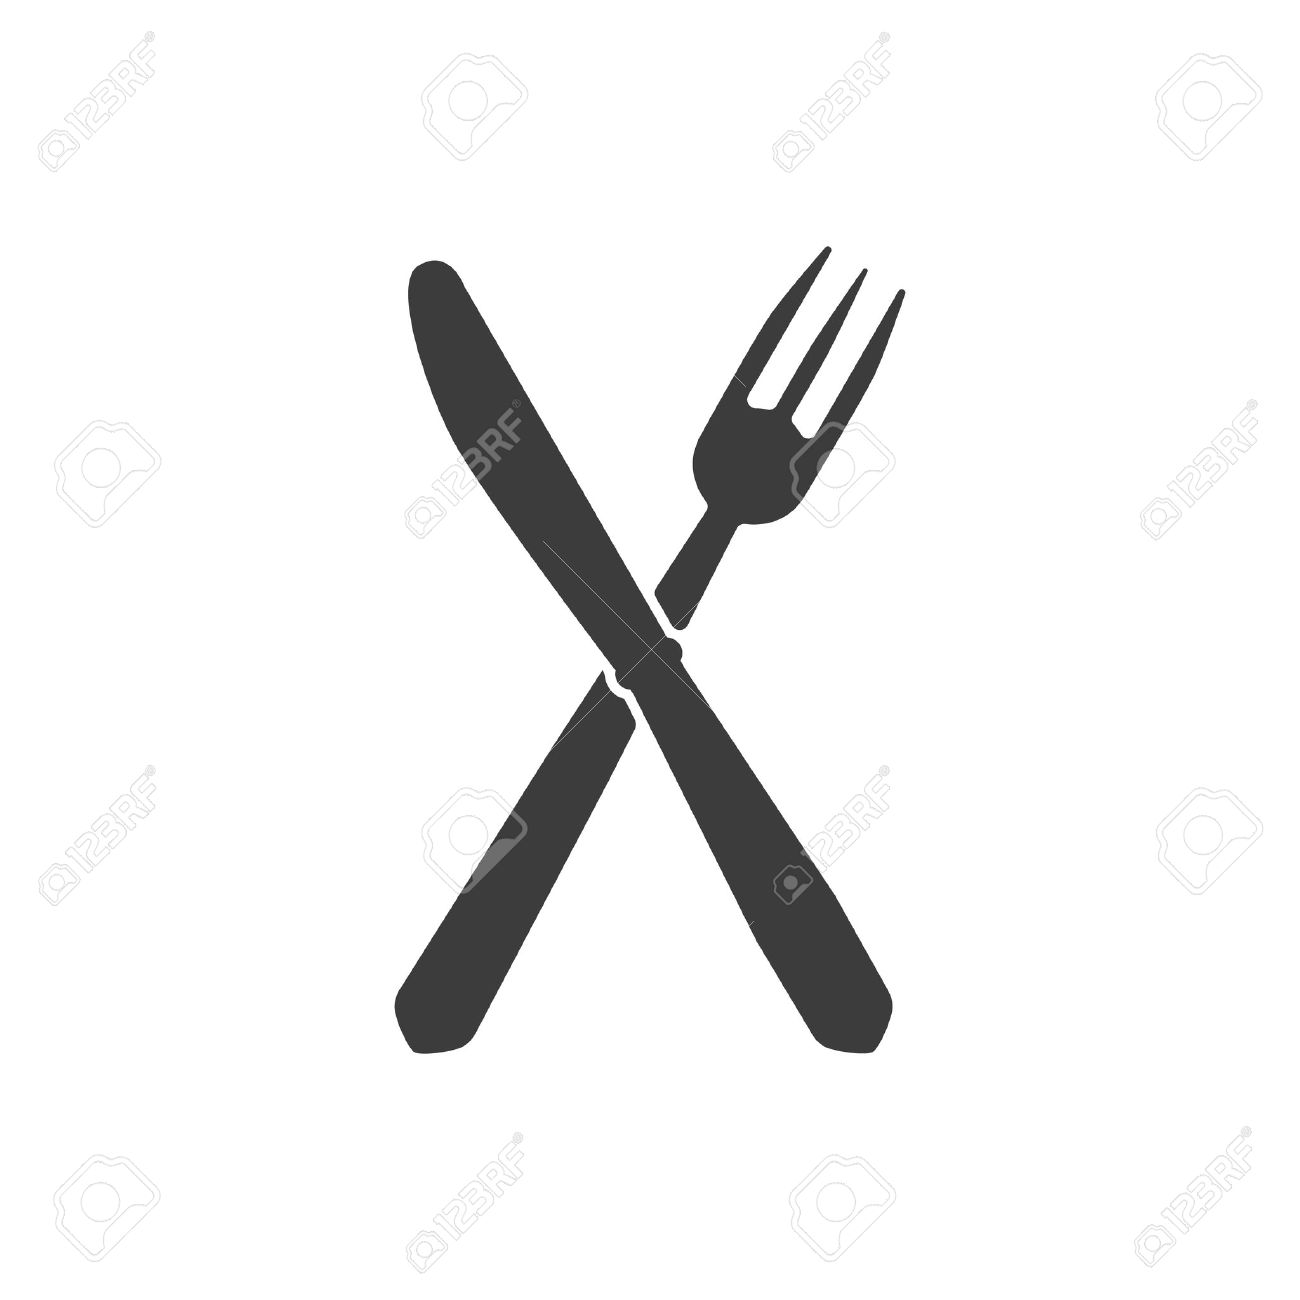 The Knife And Fork Icon Knife And Fork Symbol Flat Vector